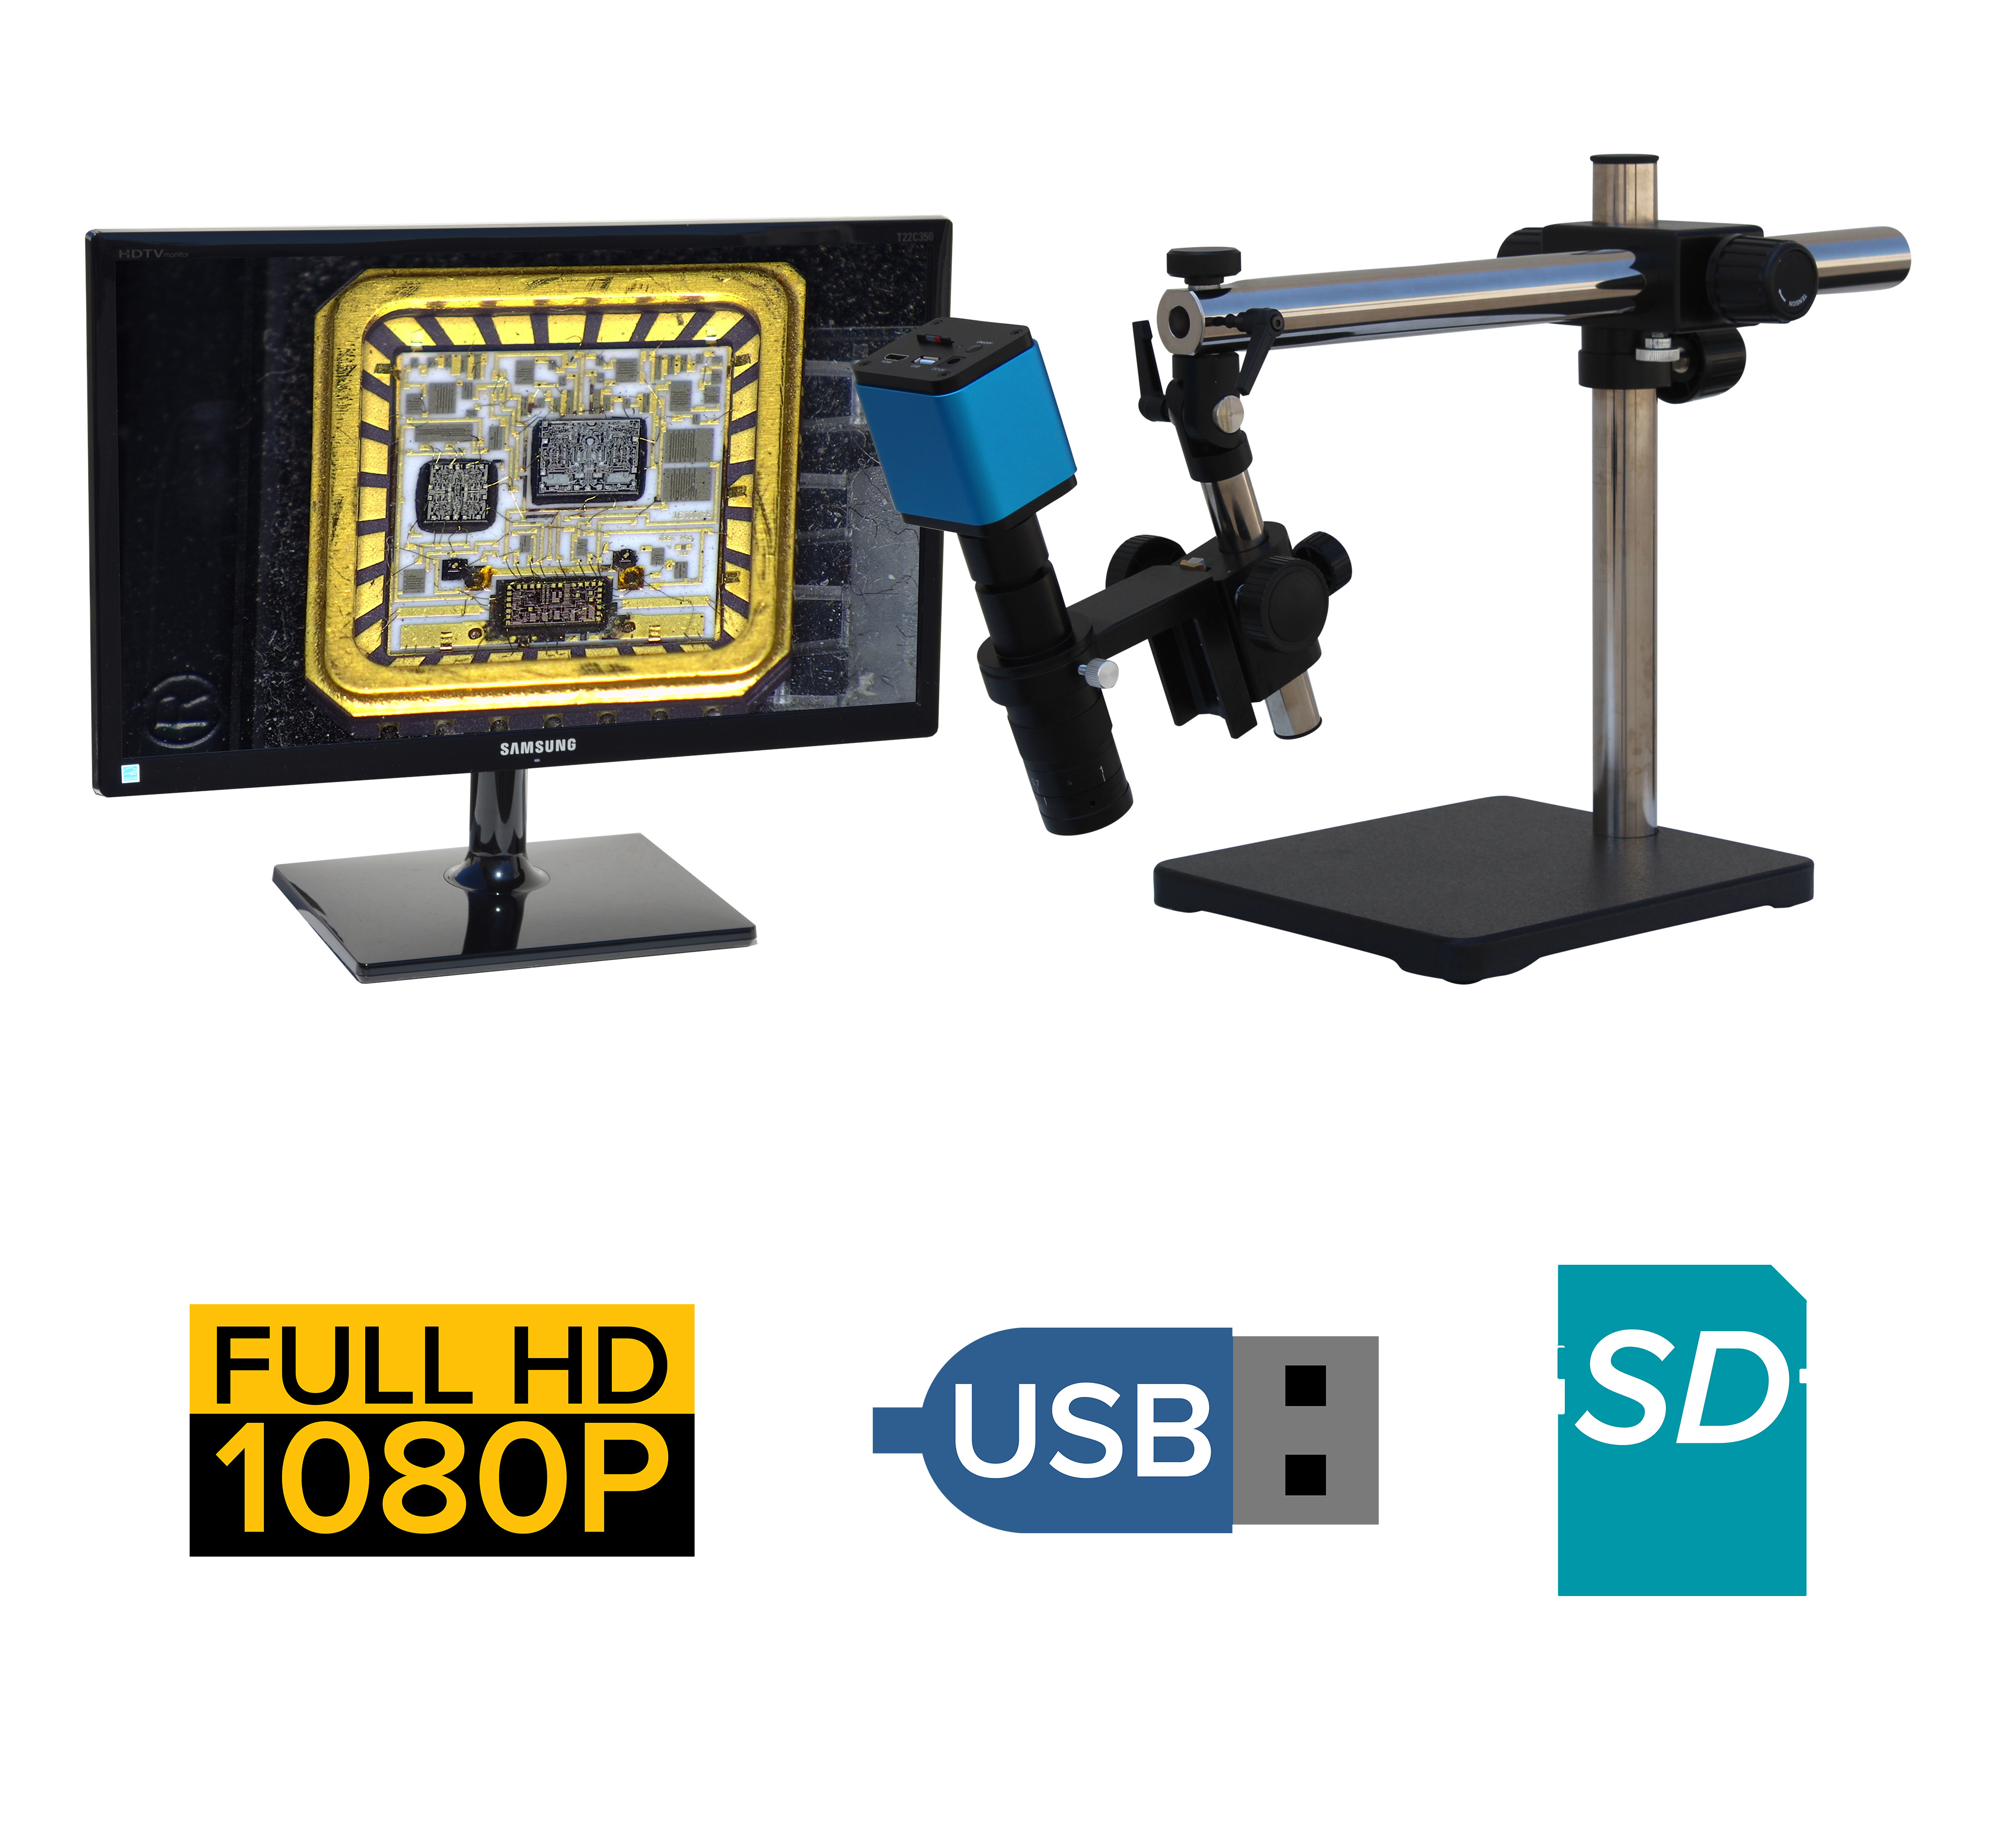 eHD305  series 36x-229x or possible 18x-457x + HD1080p + SD Card + USB + Measurement Option [Starting at $1000]